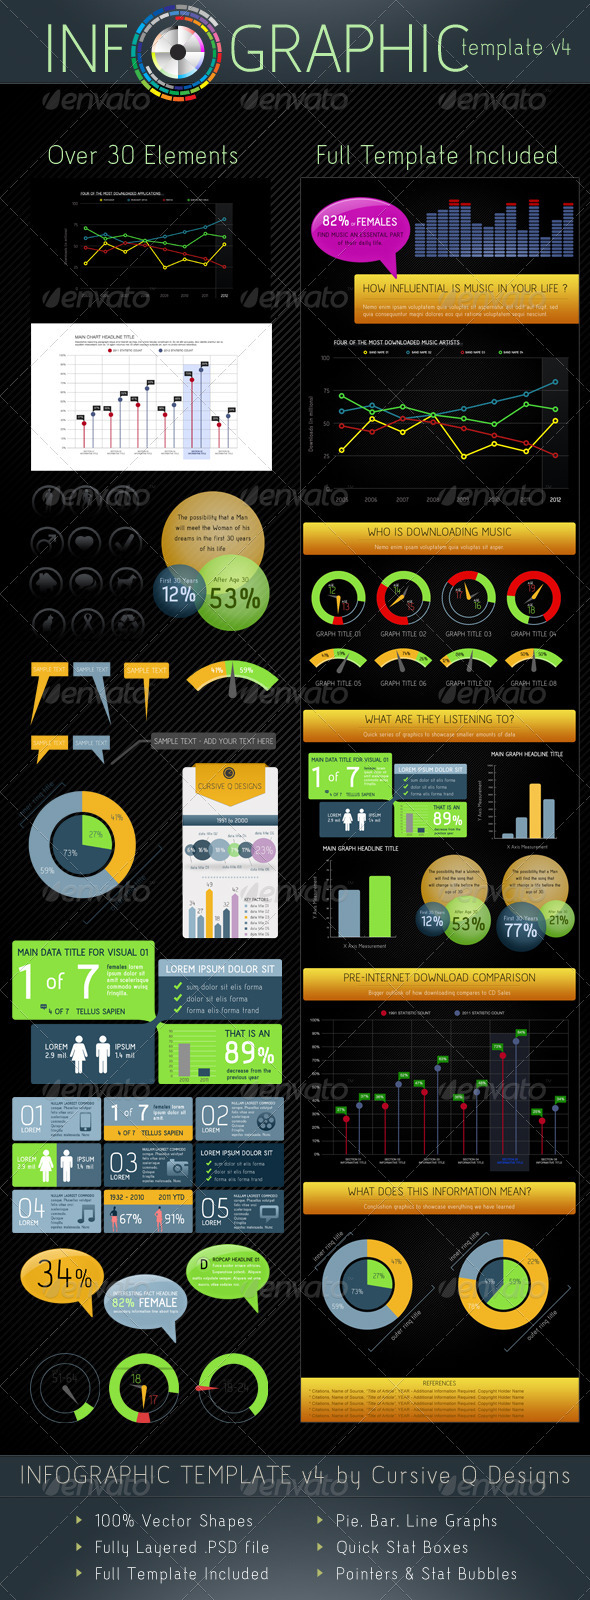 Infographic Template v4